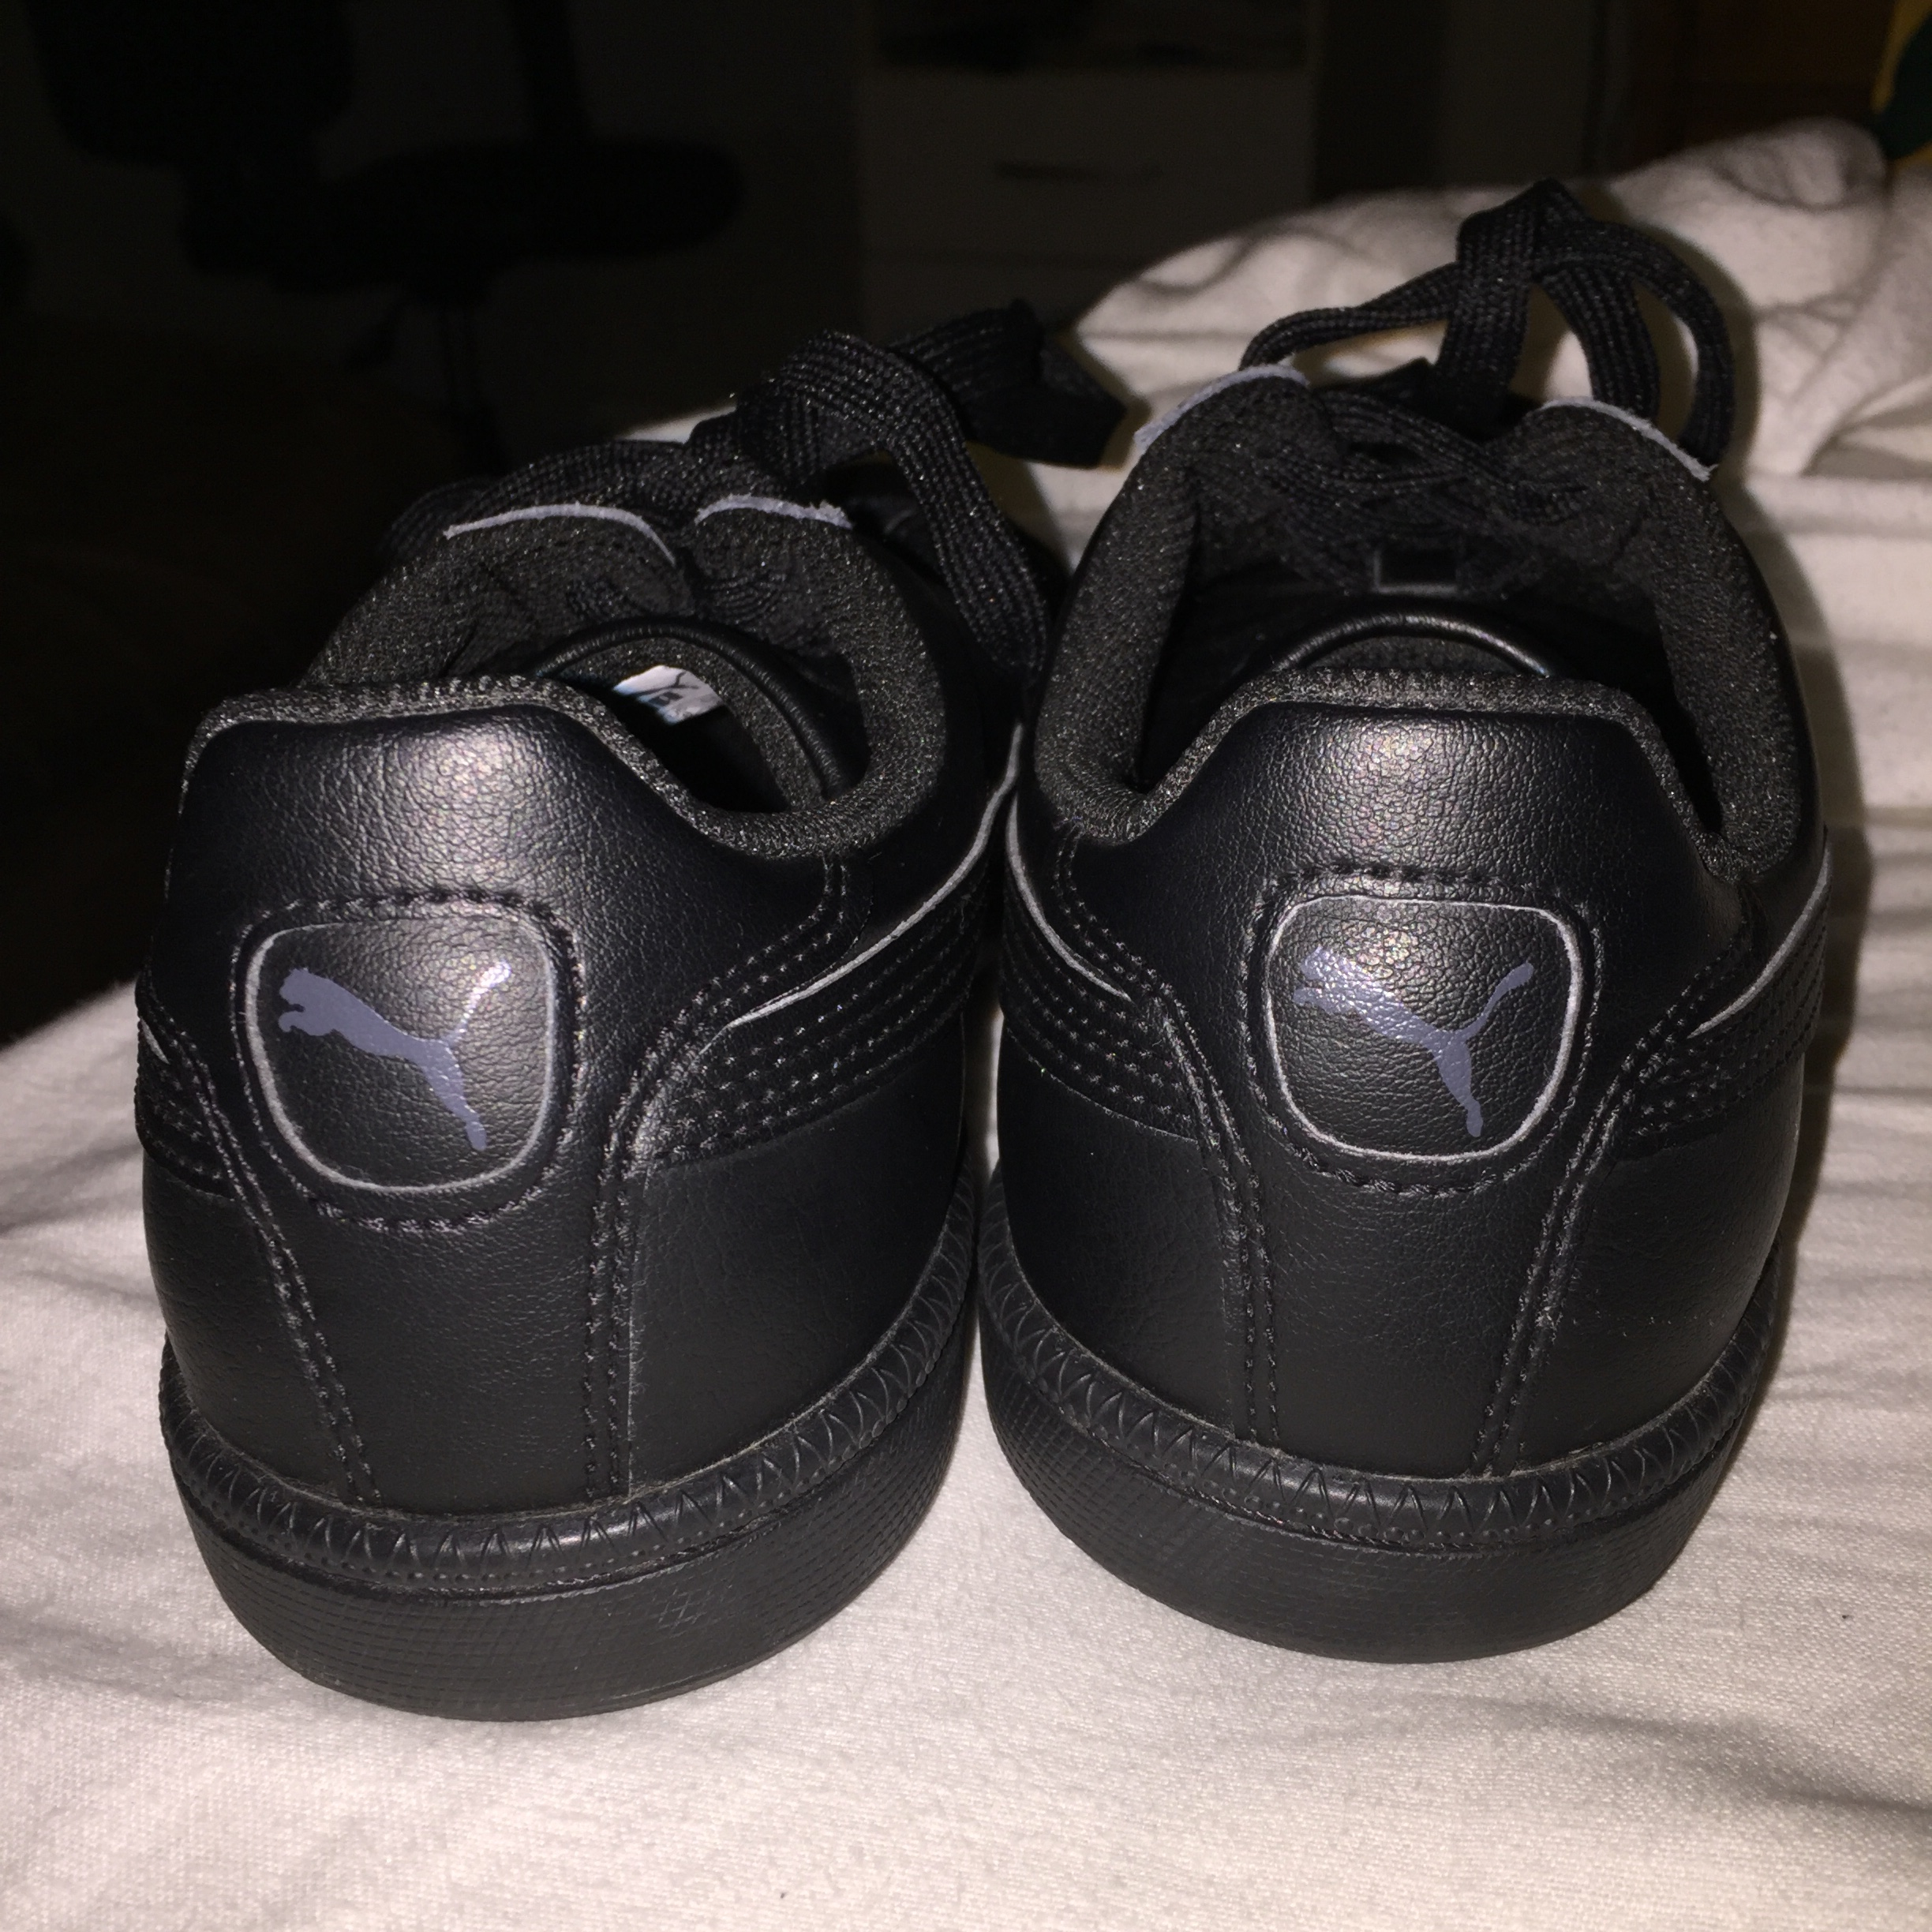 PUMA SMASH LEATHER SNEAKERS literally been worn Depop